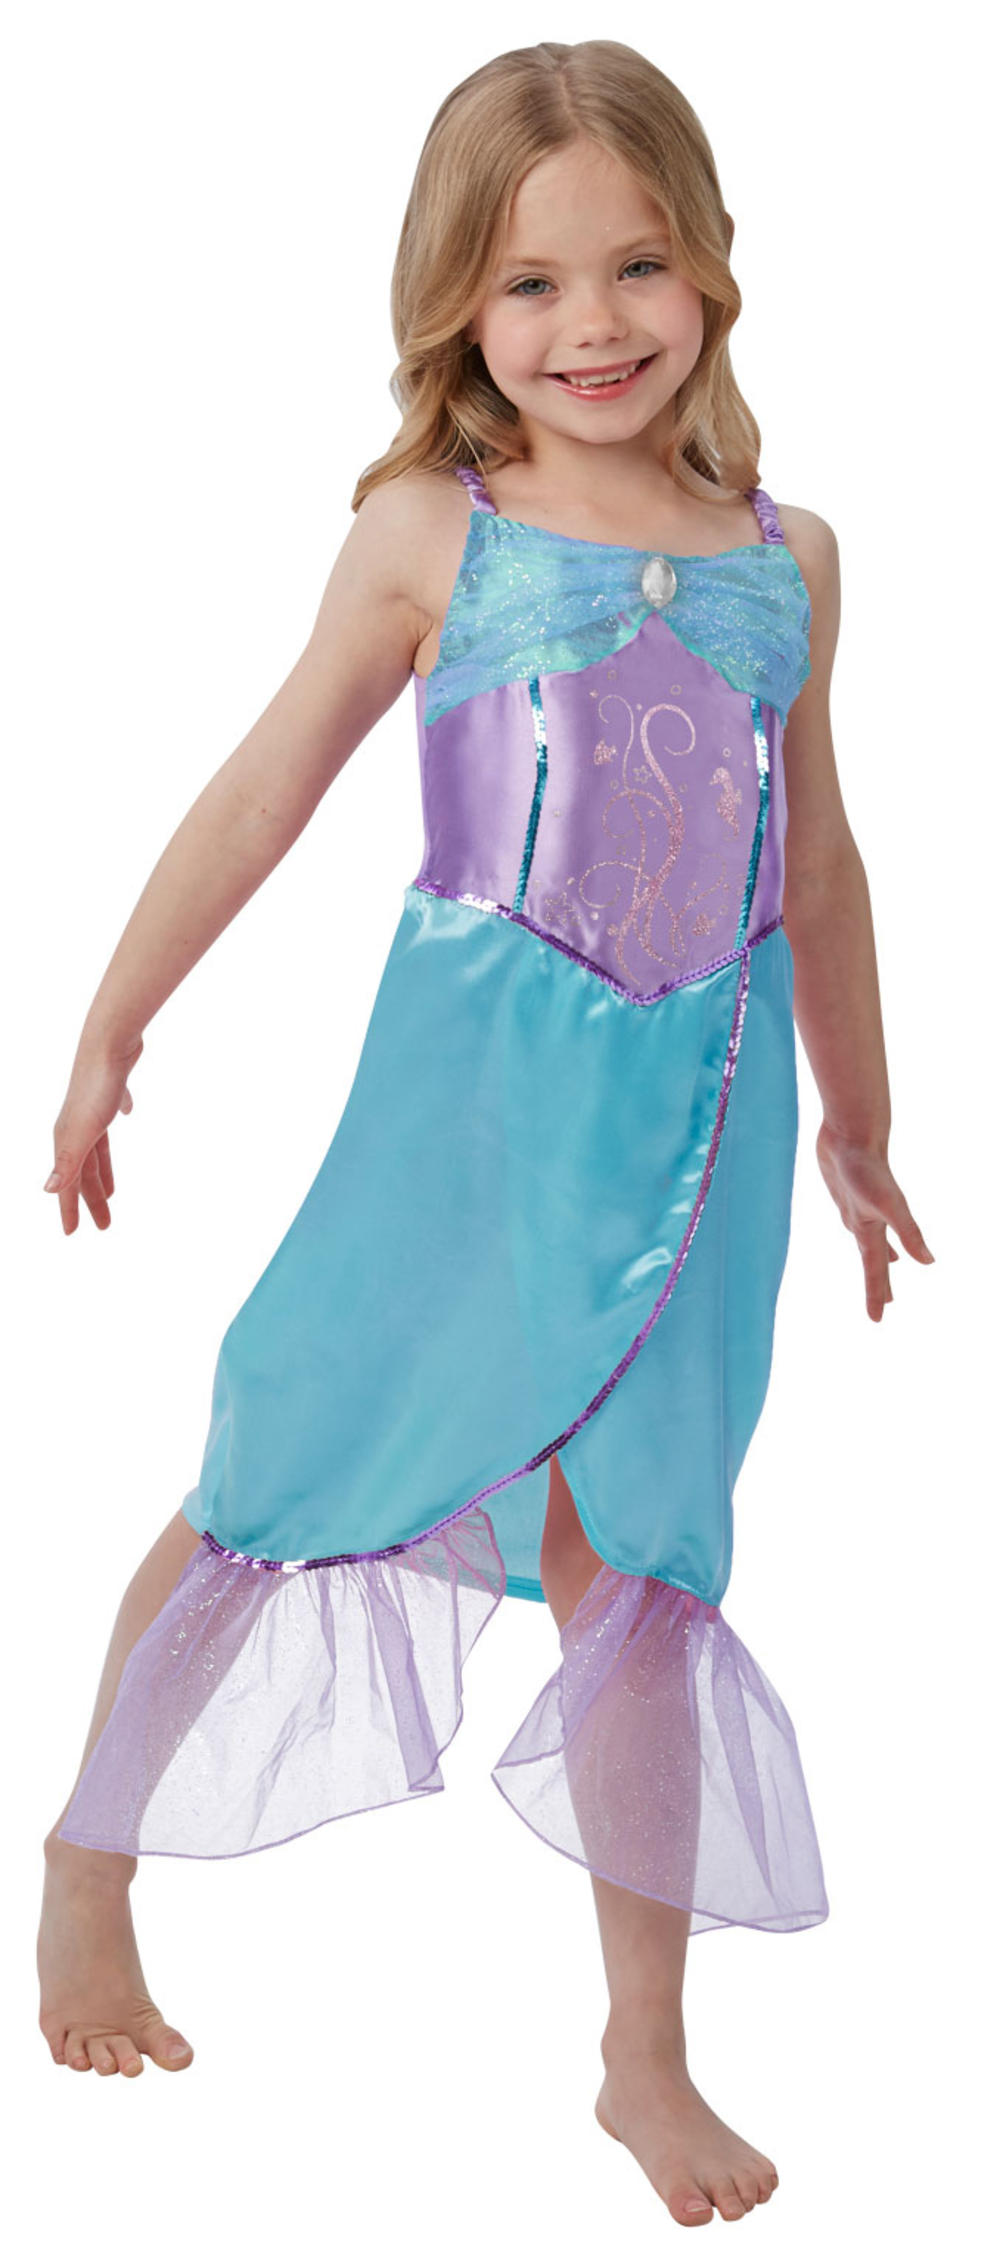 Mermaid Girls Fancy Dress Fairy Tale World Book Day Kids Childs Costume Outfit